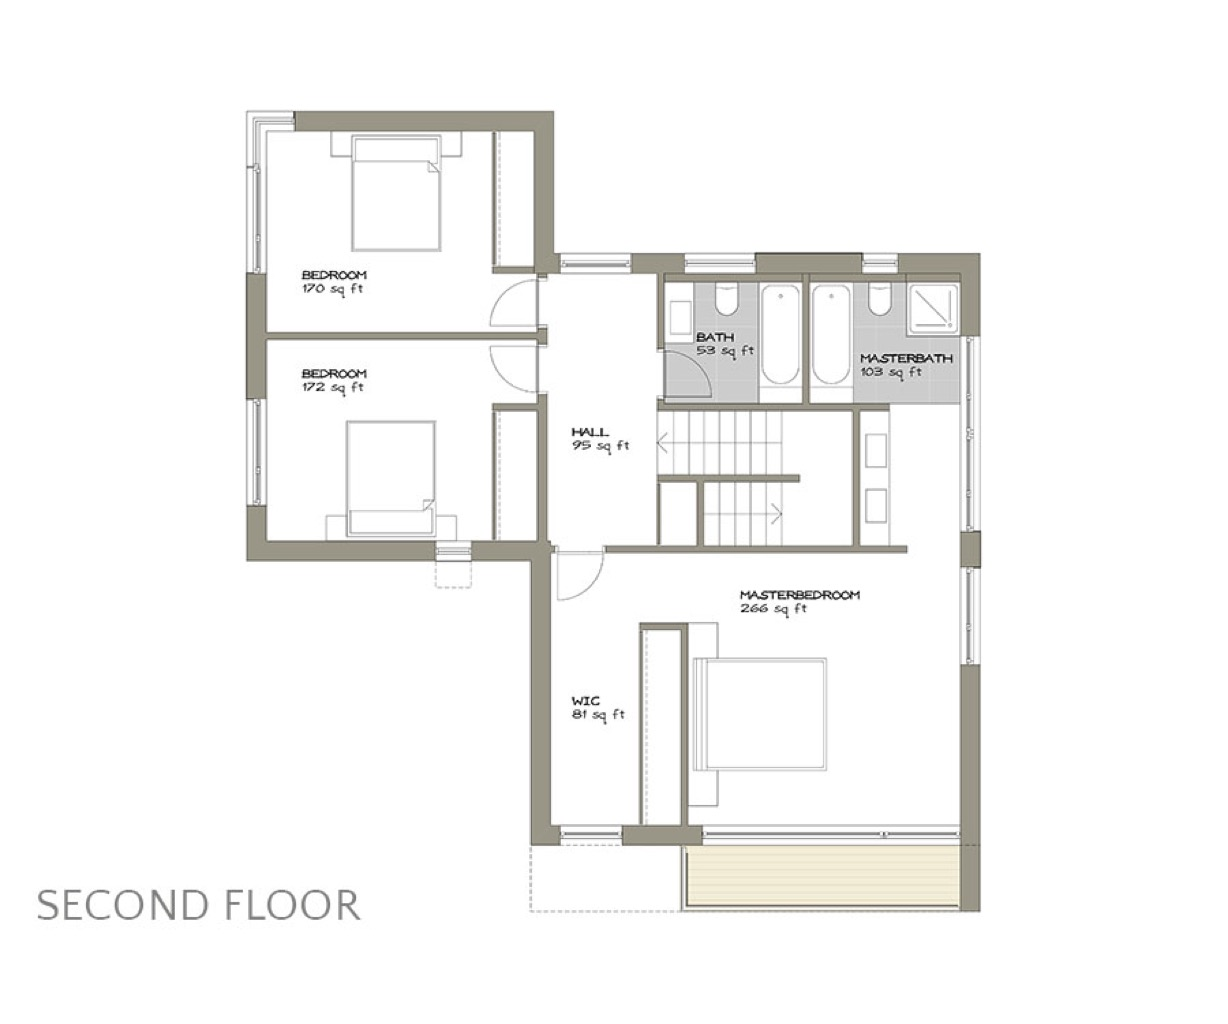 - Special Features:✓ Triple-pane floor-to-ceiling glazing✓ Open Plan✓ Compact Footprint✓ Bedroom Balcony